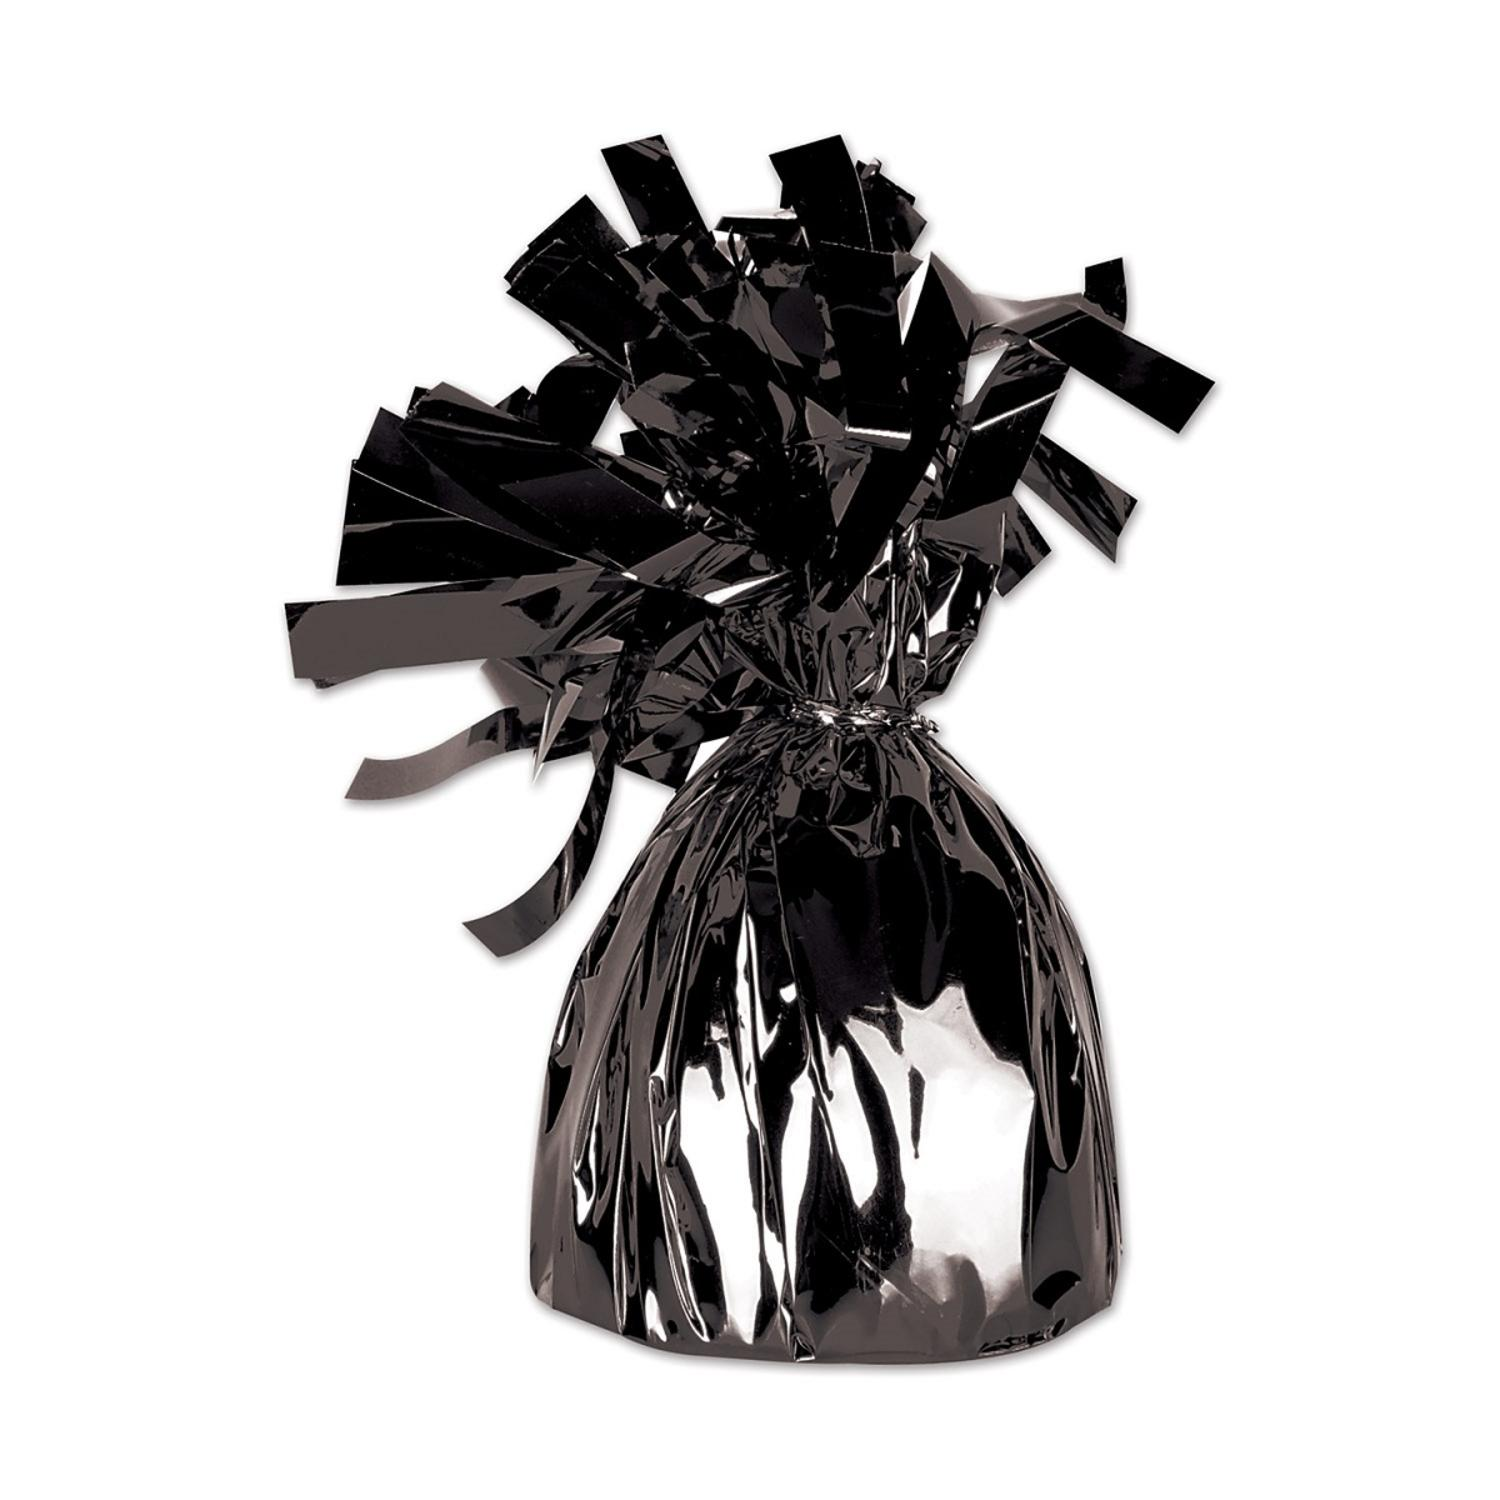 Club Pack of 12 Metallic Black Party Balloon Weight Decorative Birthday Centerpieces 6 oz.